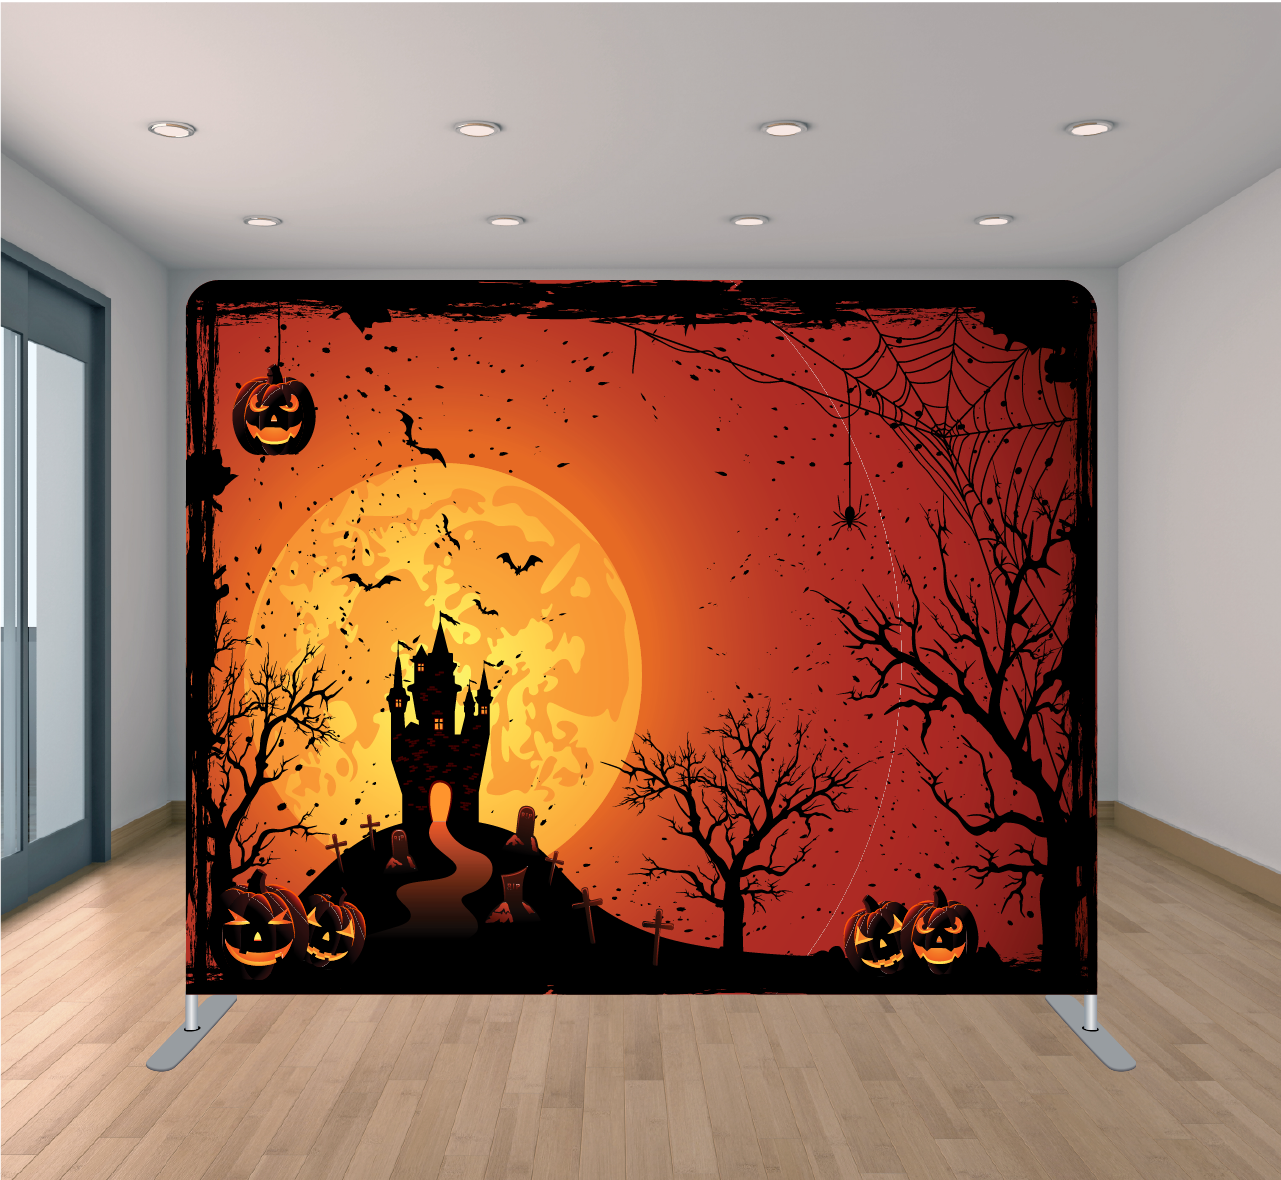 8x8ft Pillowcase Tension Backdrop- Haunted House 2